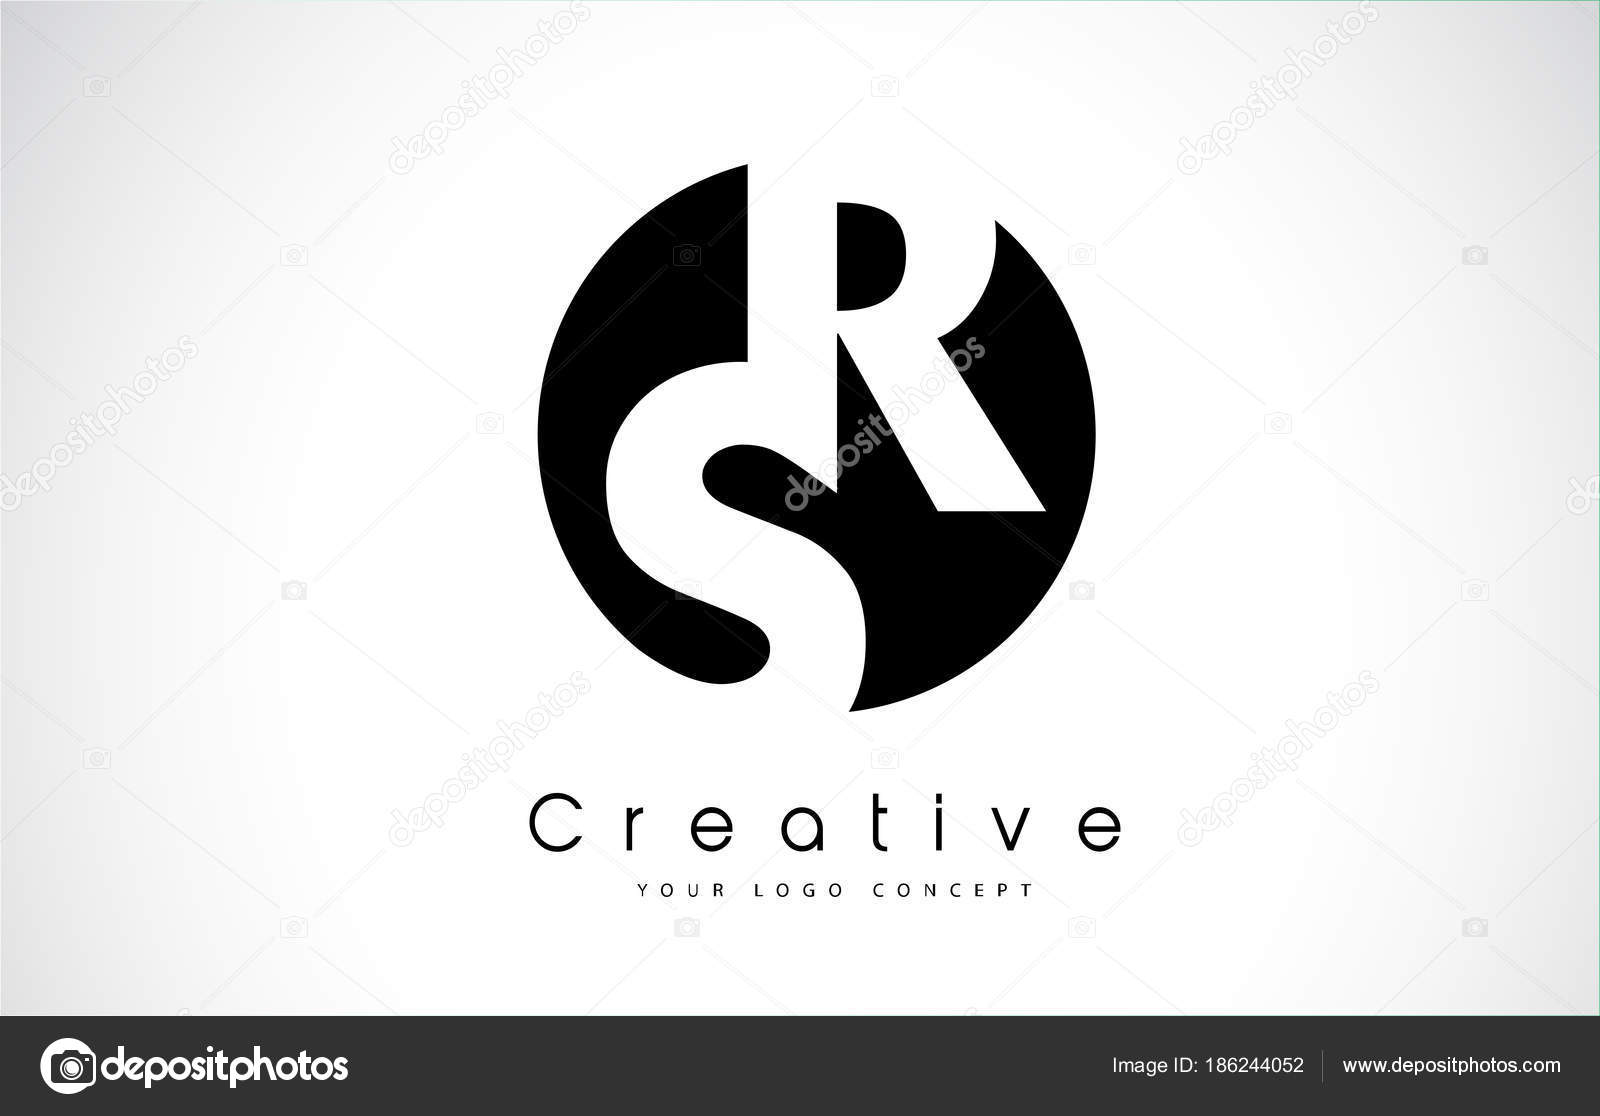 Rs letter logo design inside a black circle stock vector rs letter logo design inside a black circle stock vector buycottarizona Image collections